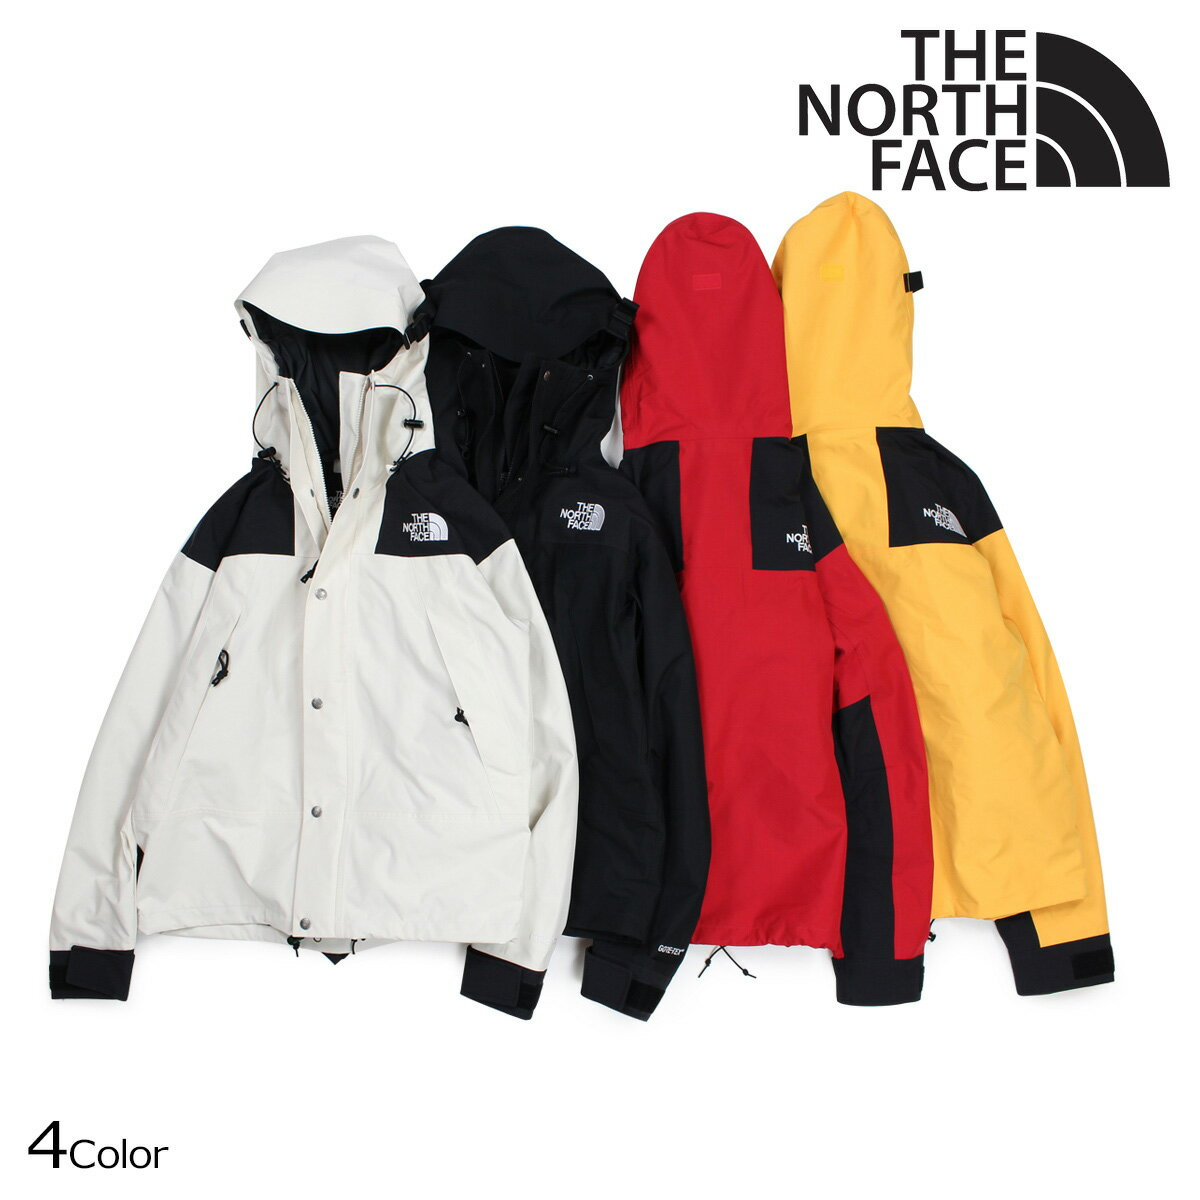 8197f1687 THE NORTH FACE North Face jacket mountain jacket men Gore-Tex MENS 1990  MOUNTAIN JACKET GTX NF0A3JPA